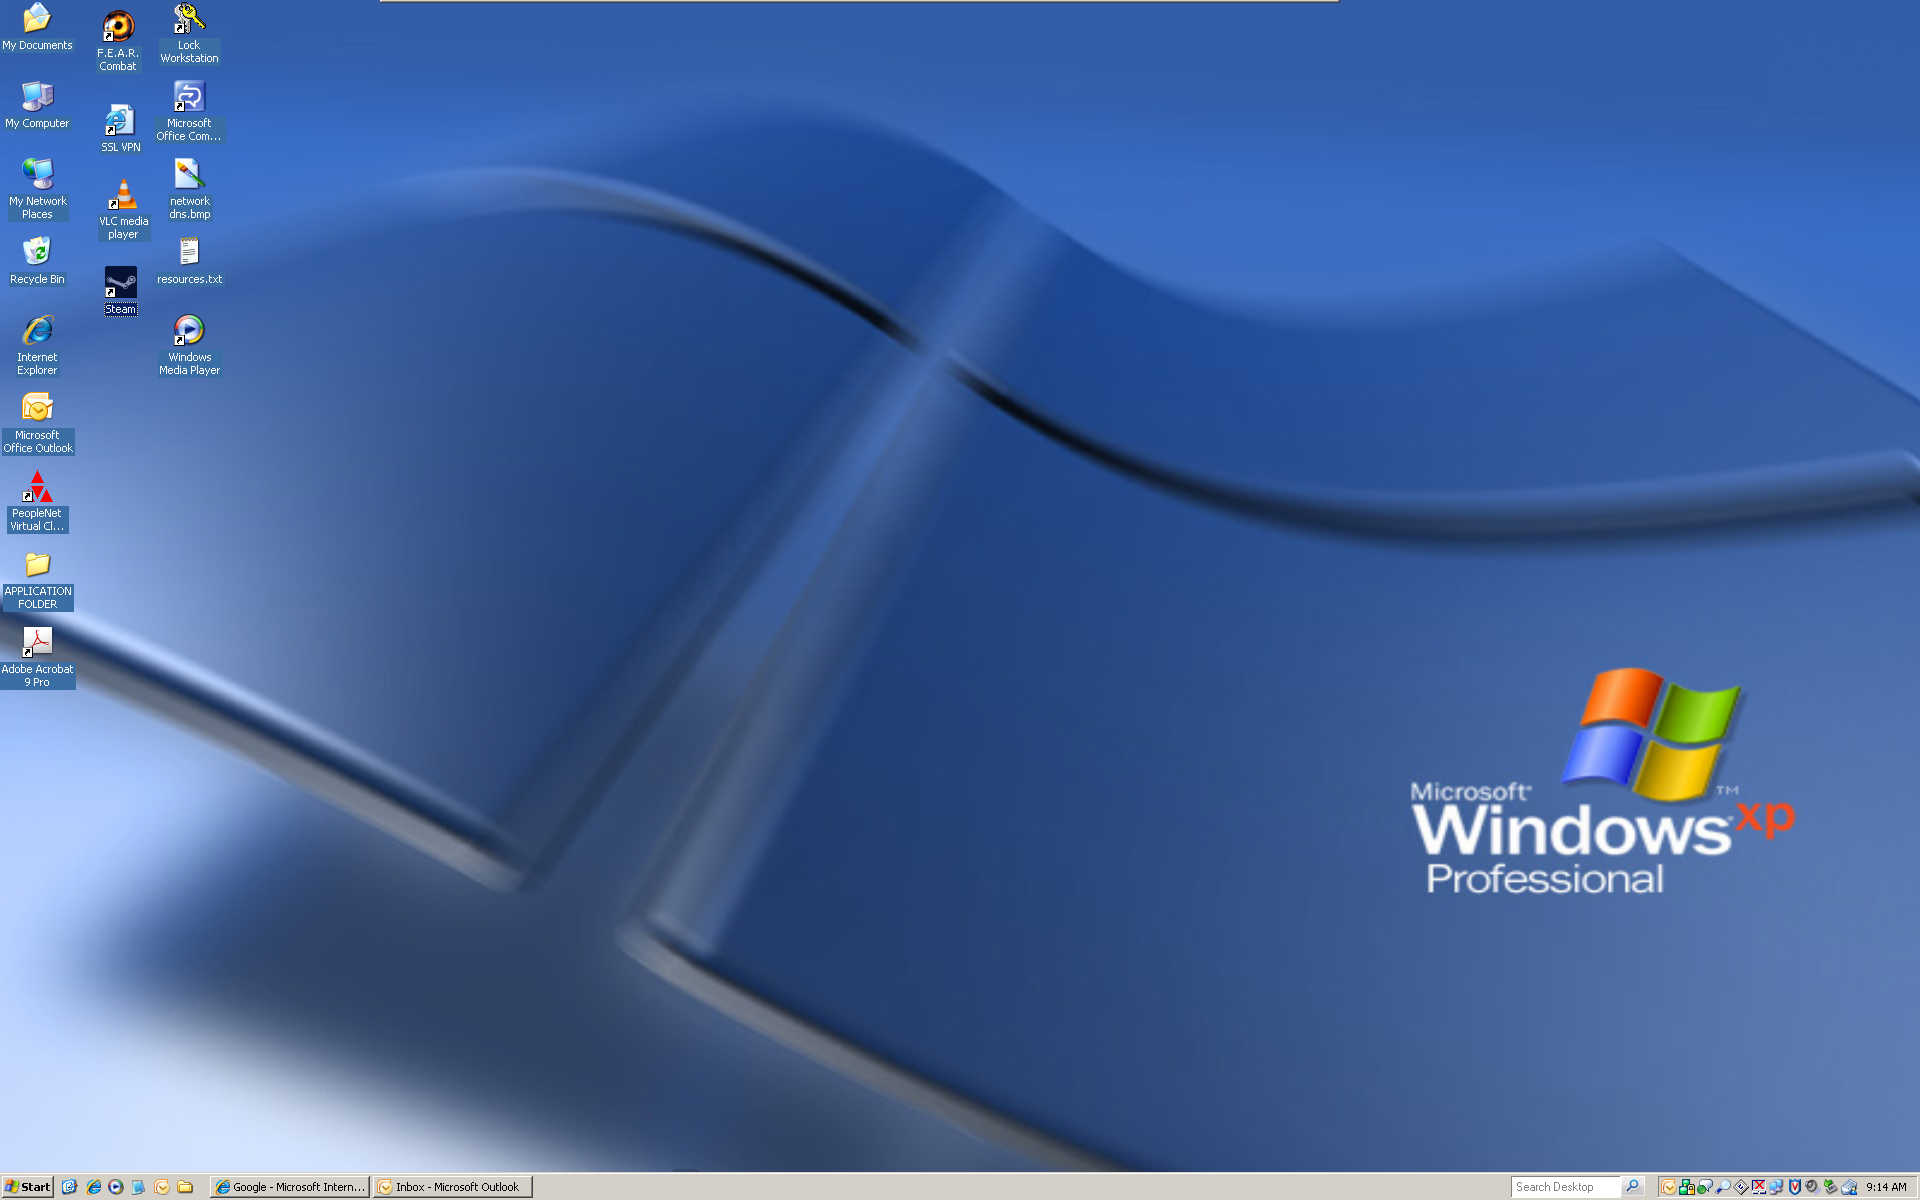 generic windows background